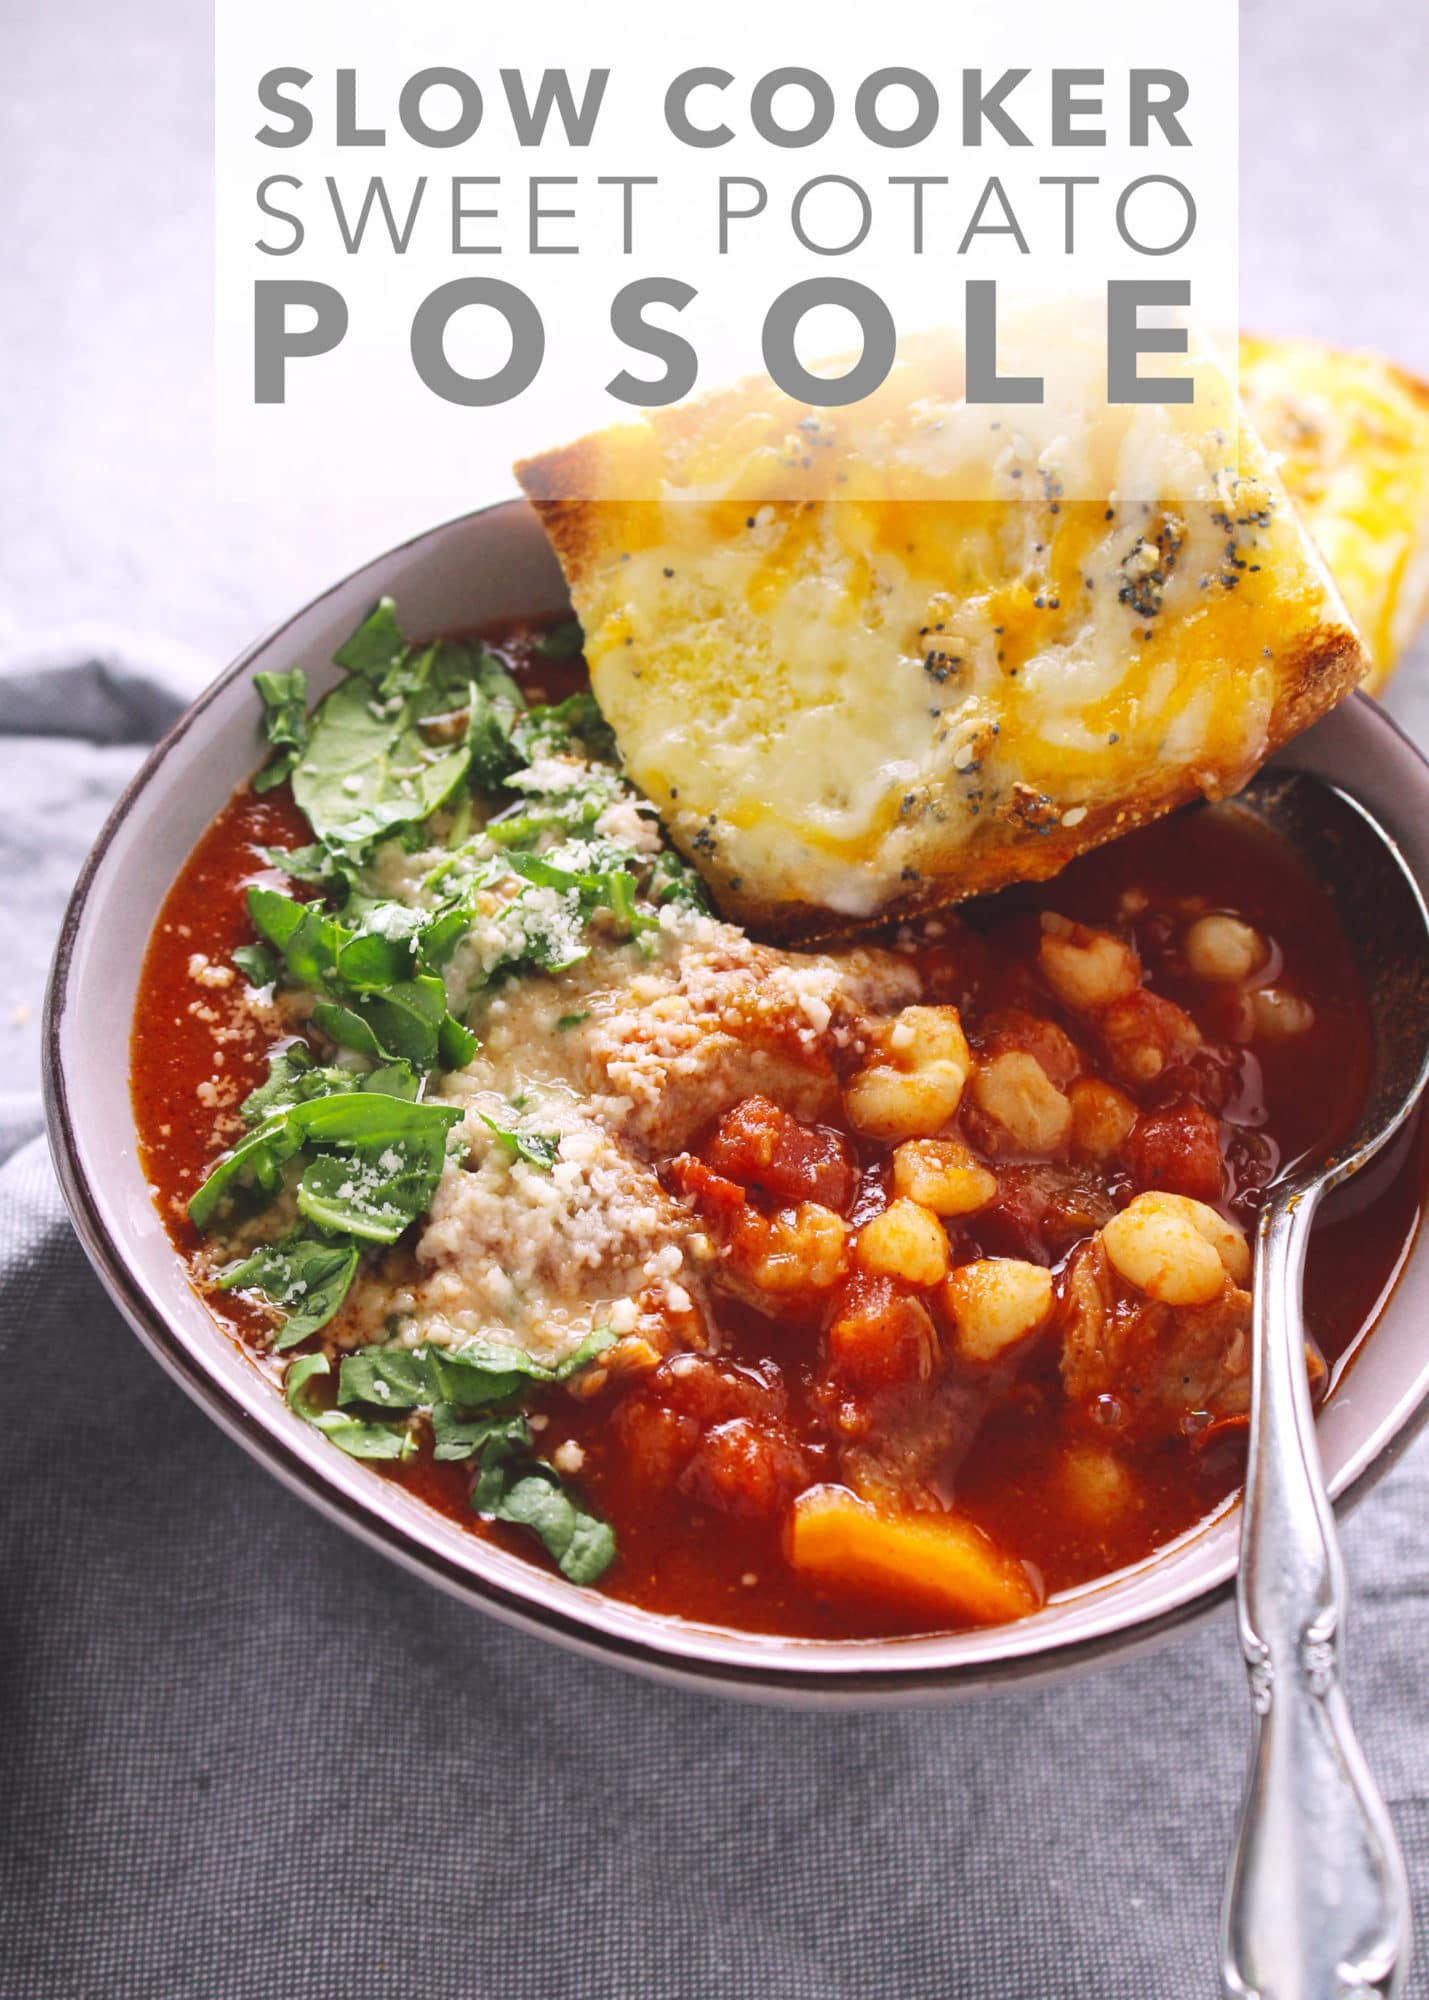 Slow Cooker Sweet Potato Posole, a traditional celebratory stew in Mexico, is a hearty weeknight meal and perfect for when you want all your ingredients to go in one pot | via @AimeeMarsLiving | #Posole #SweetPotato #Stew